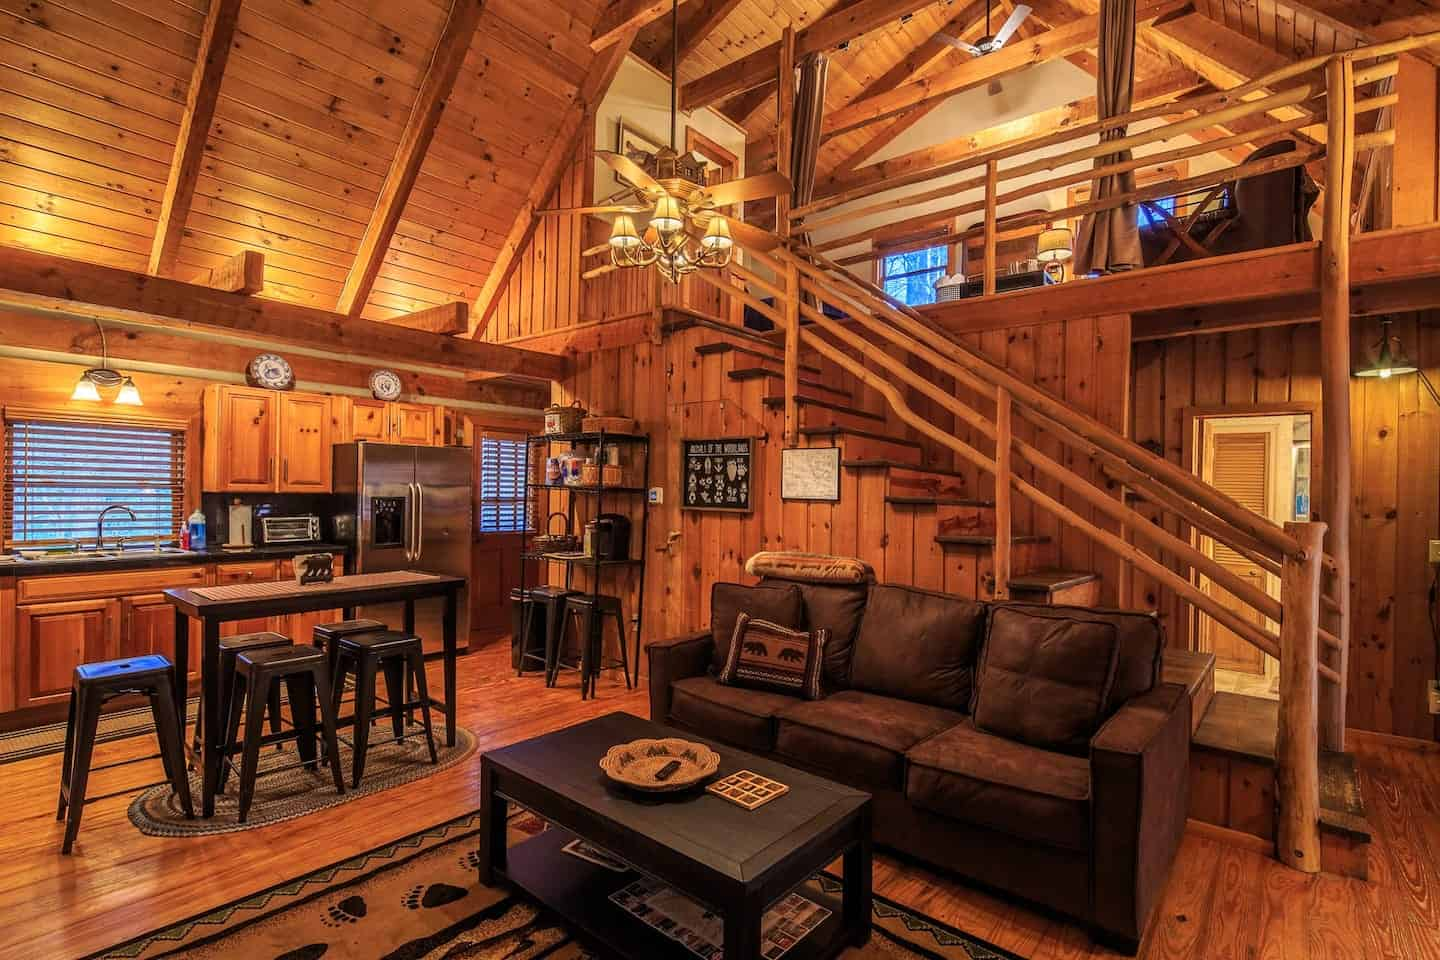 Image of Airbnb rental in Boone, North Carolina